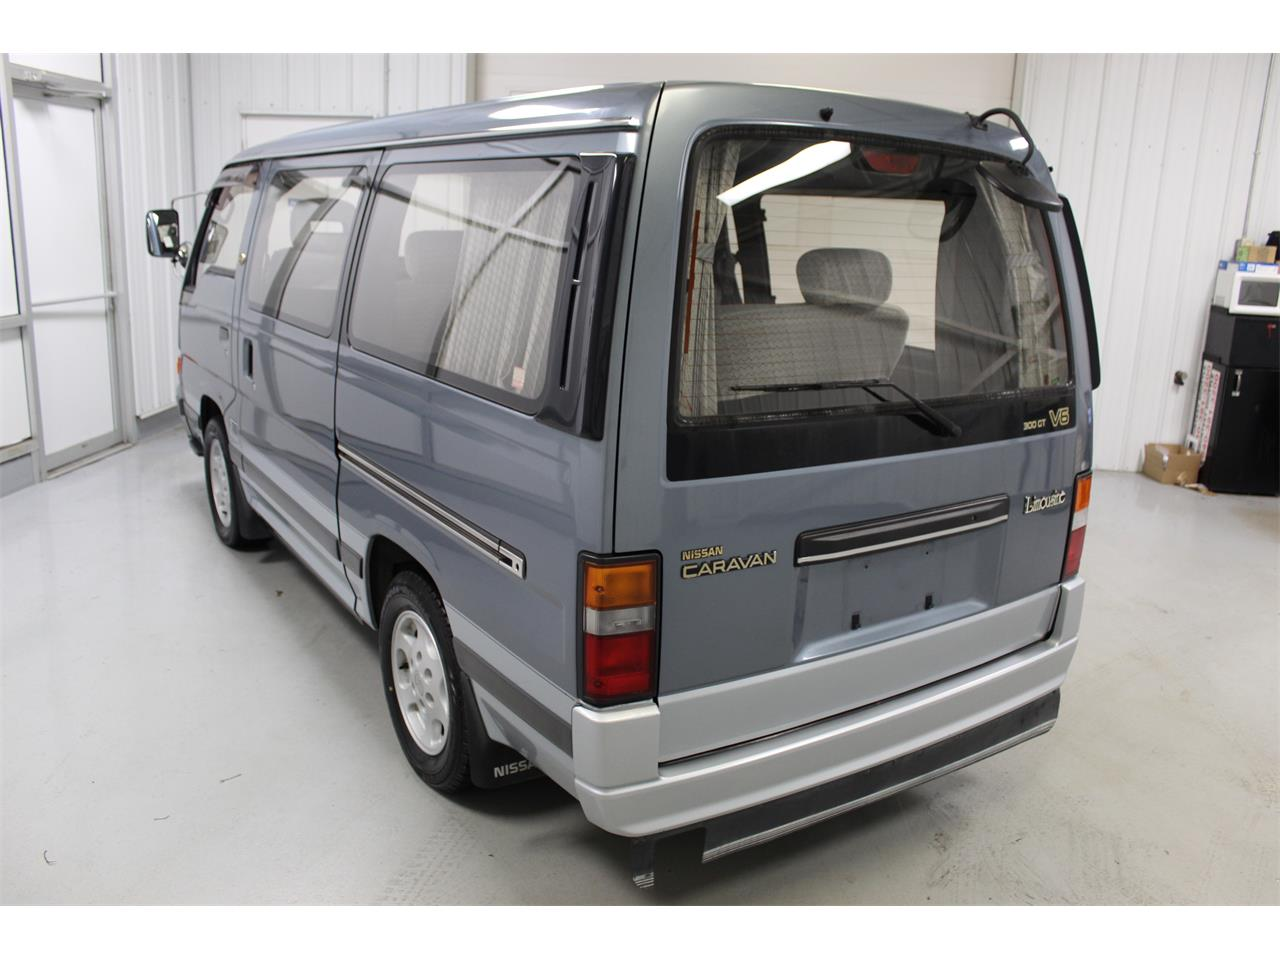 Large Picture of '90 Nissan Caravan - $11,965.00 - PH22